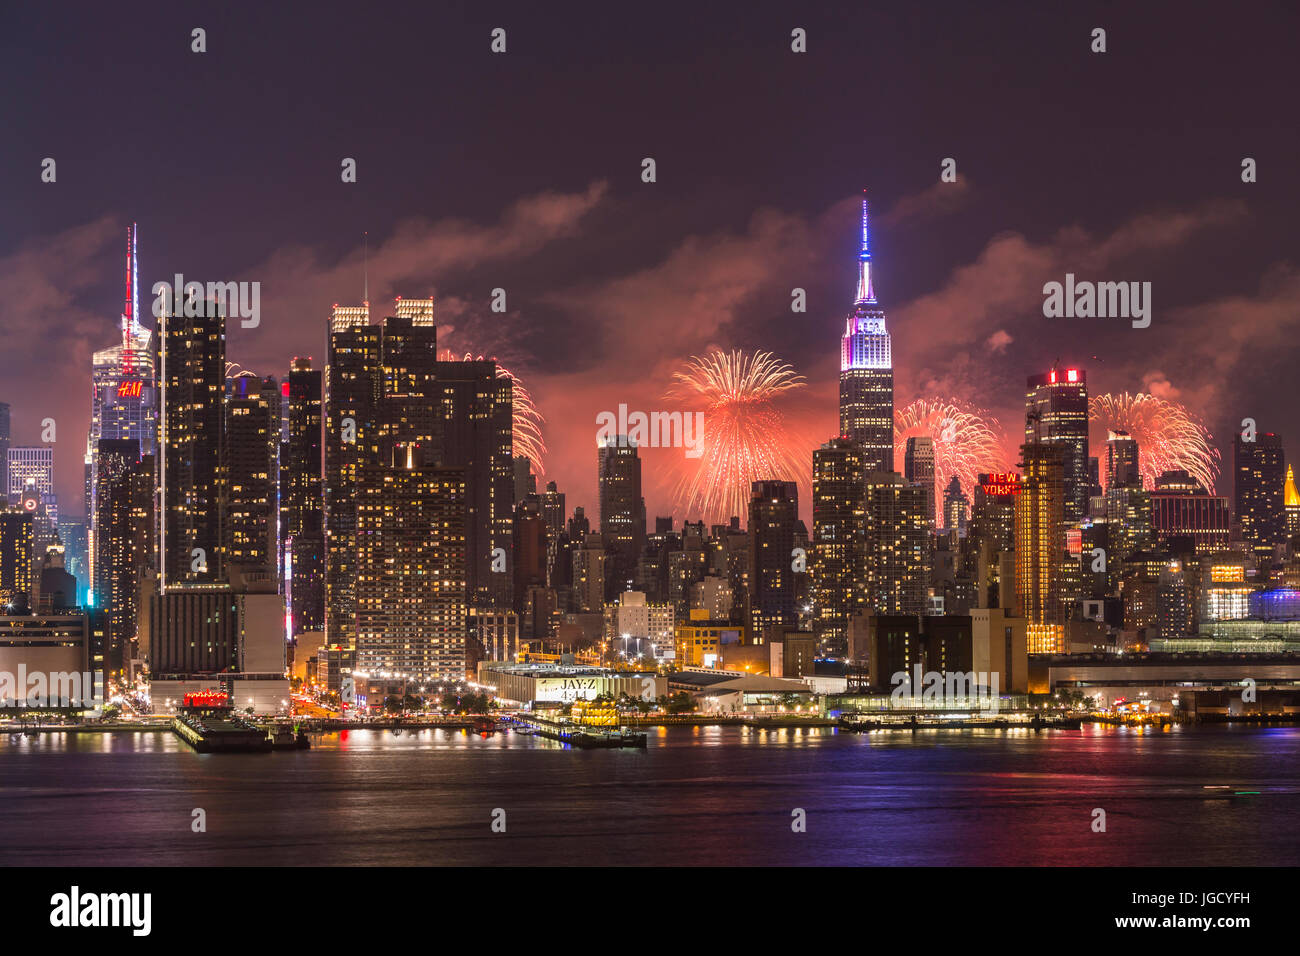 The annual Macy's Fourth of July fireworks show lights the sky behind the Manhattan skyline in New York City as Stock Photo